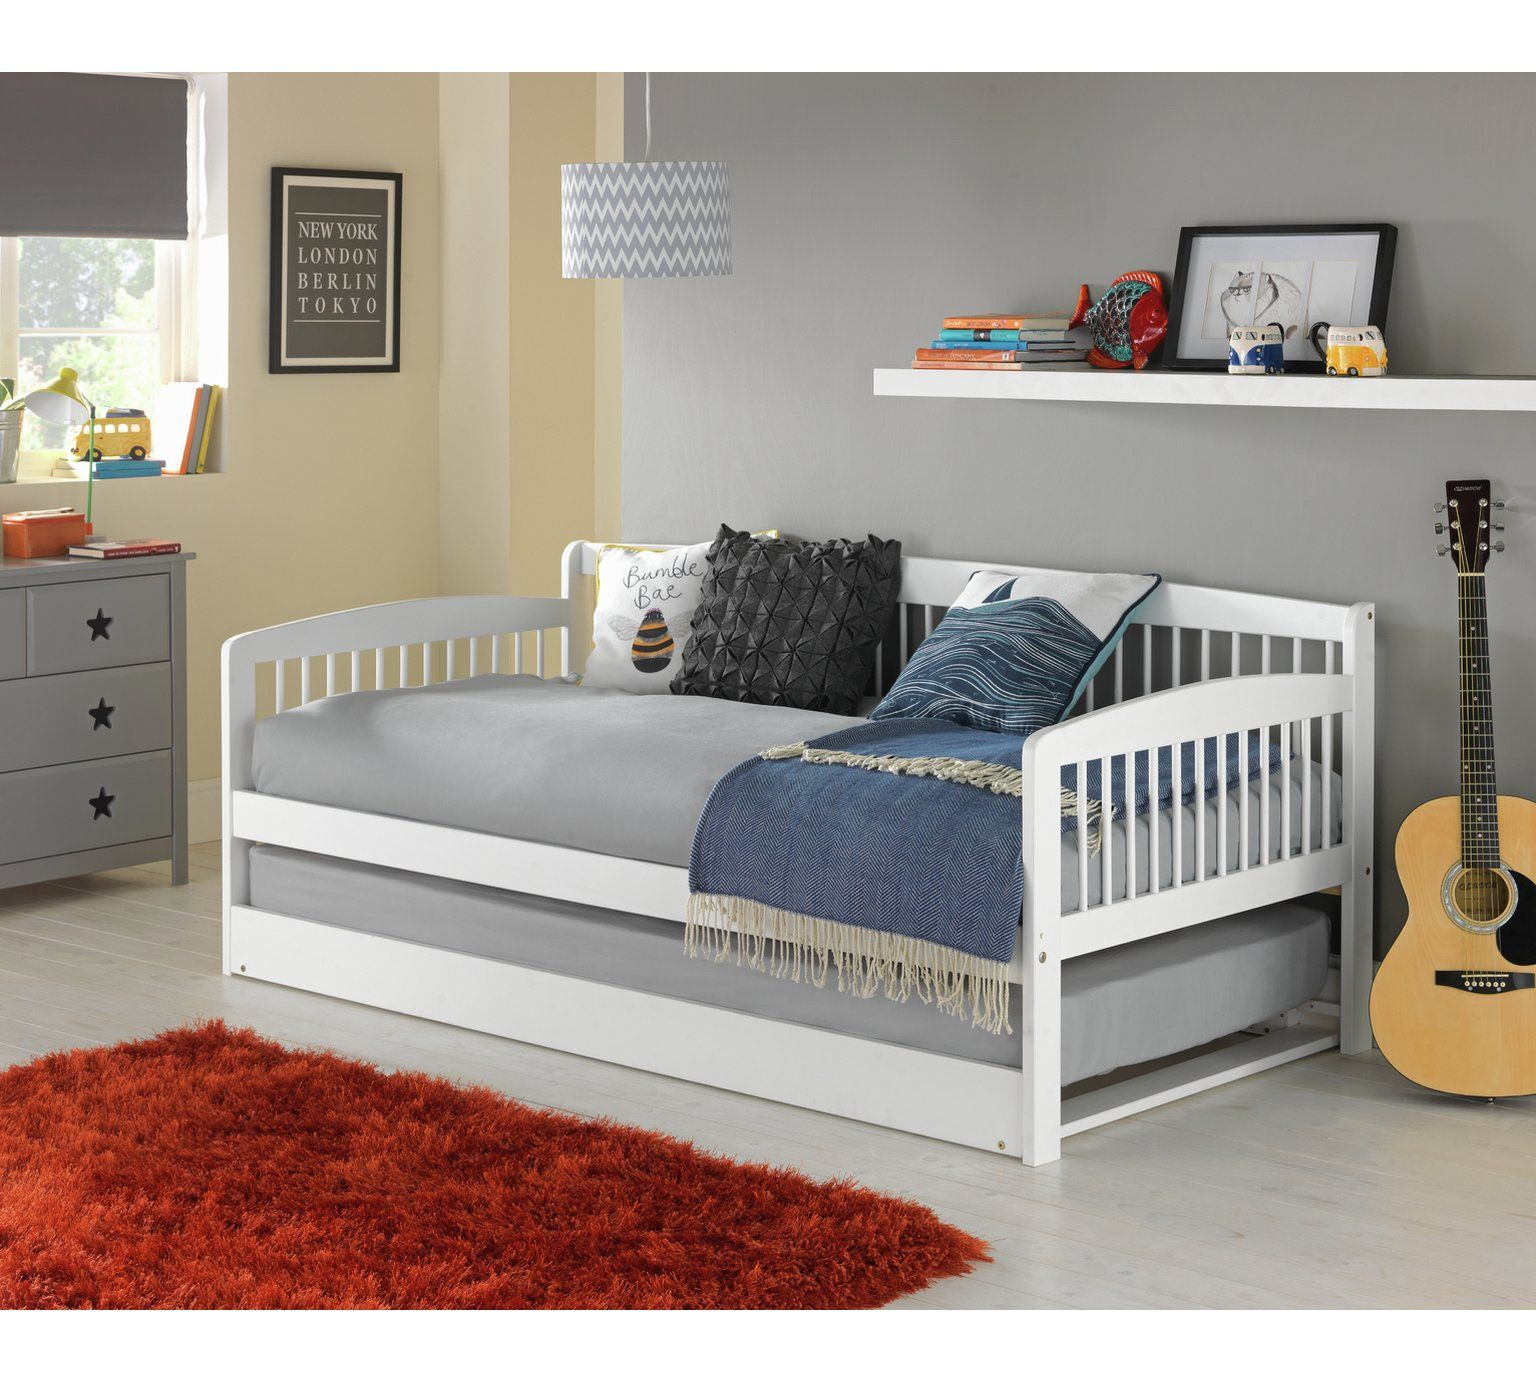 argos bedroom furniture. Buy HOME Wooden Day Bed With Mattress - White At Argos.co.uk, Argos Bedroom Furniture S